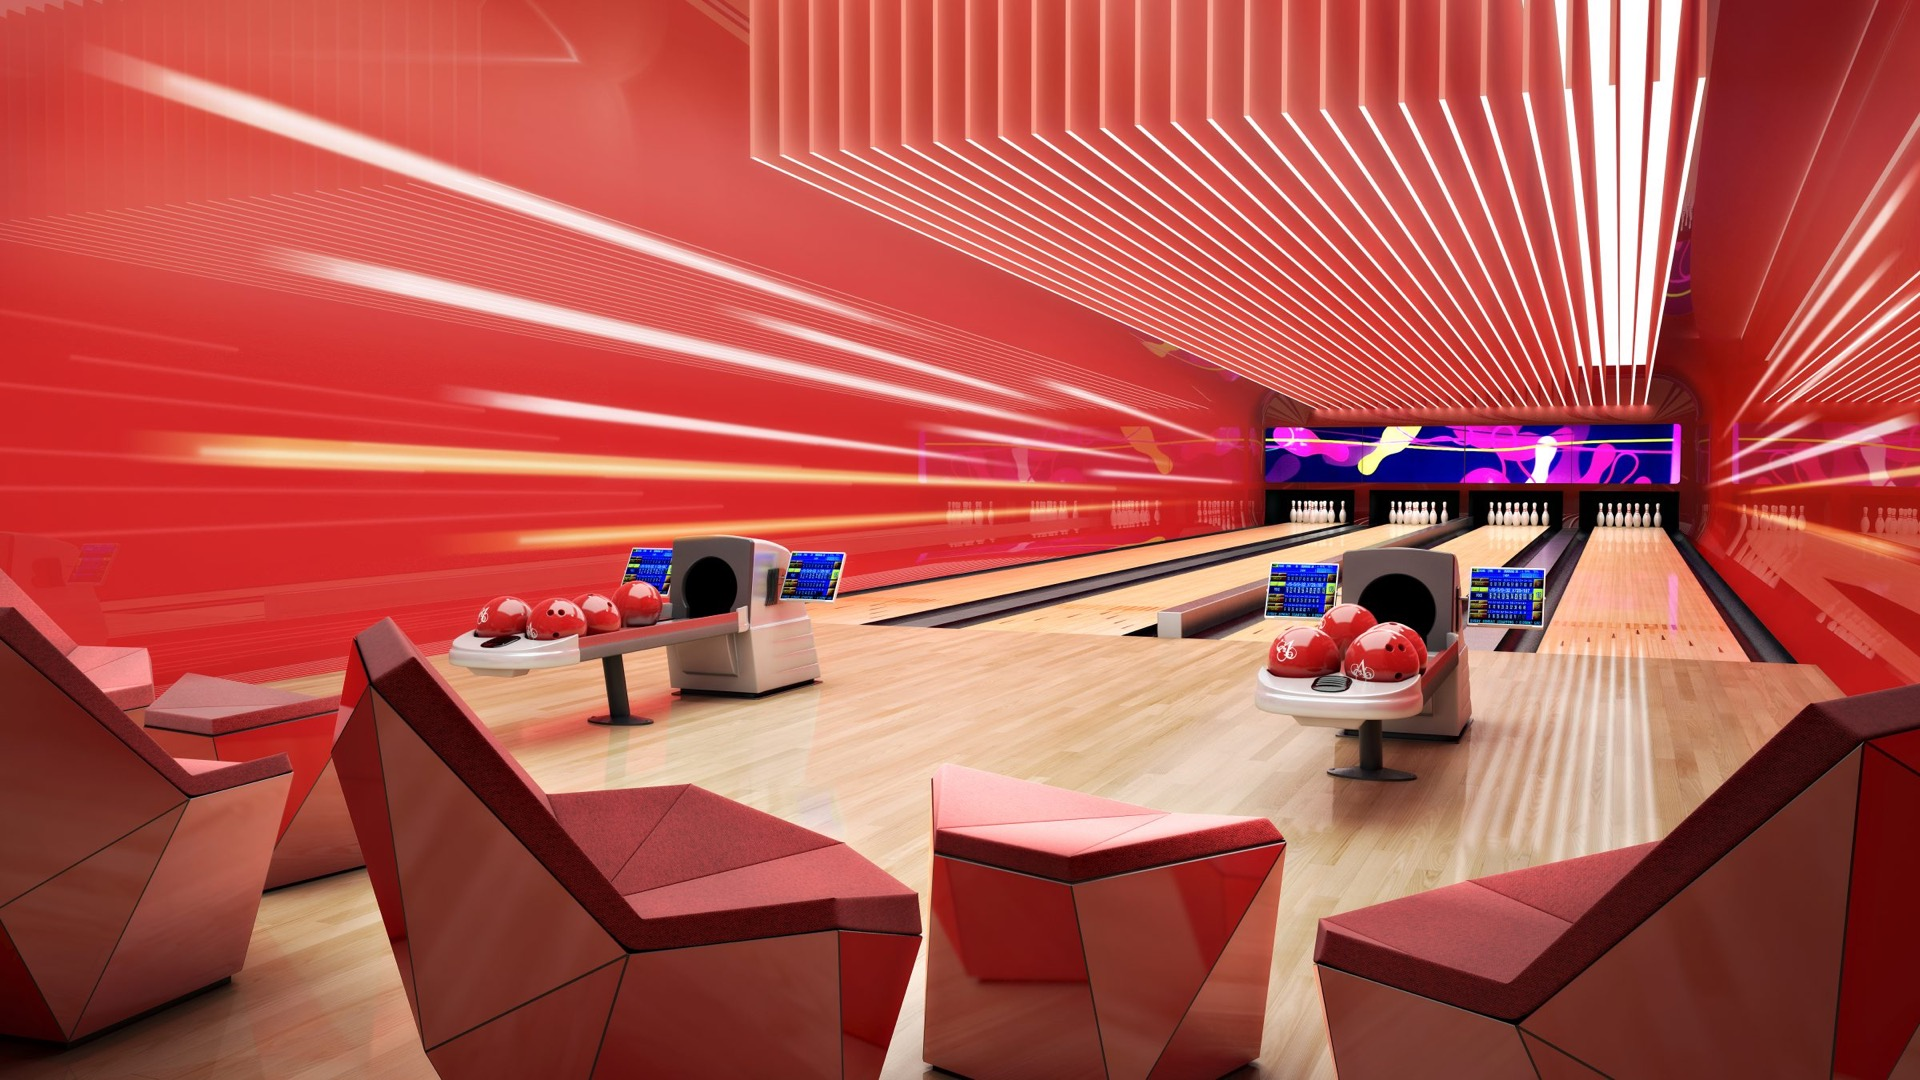 Bowling alley with 4 lanes image